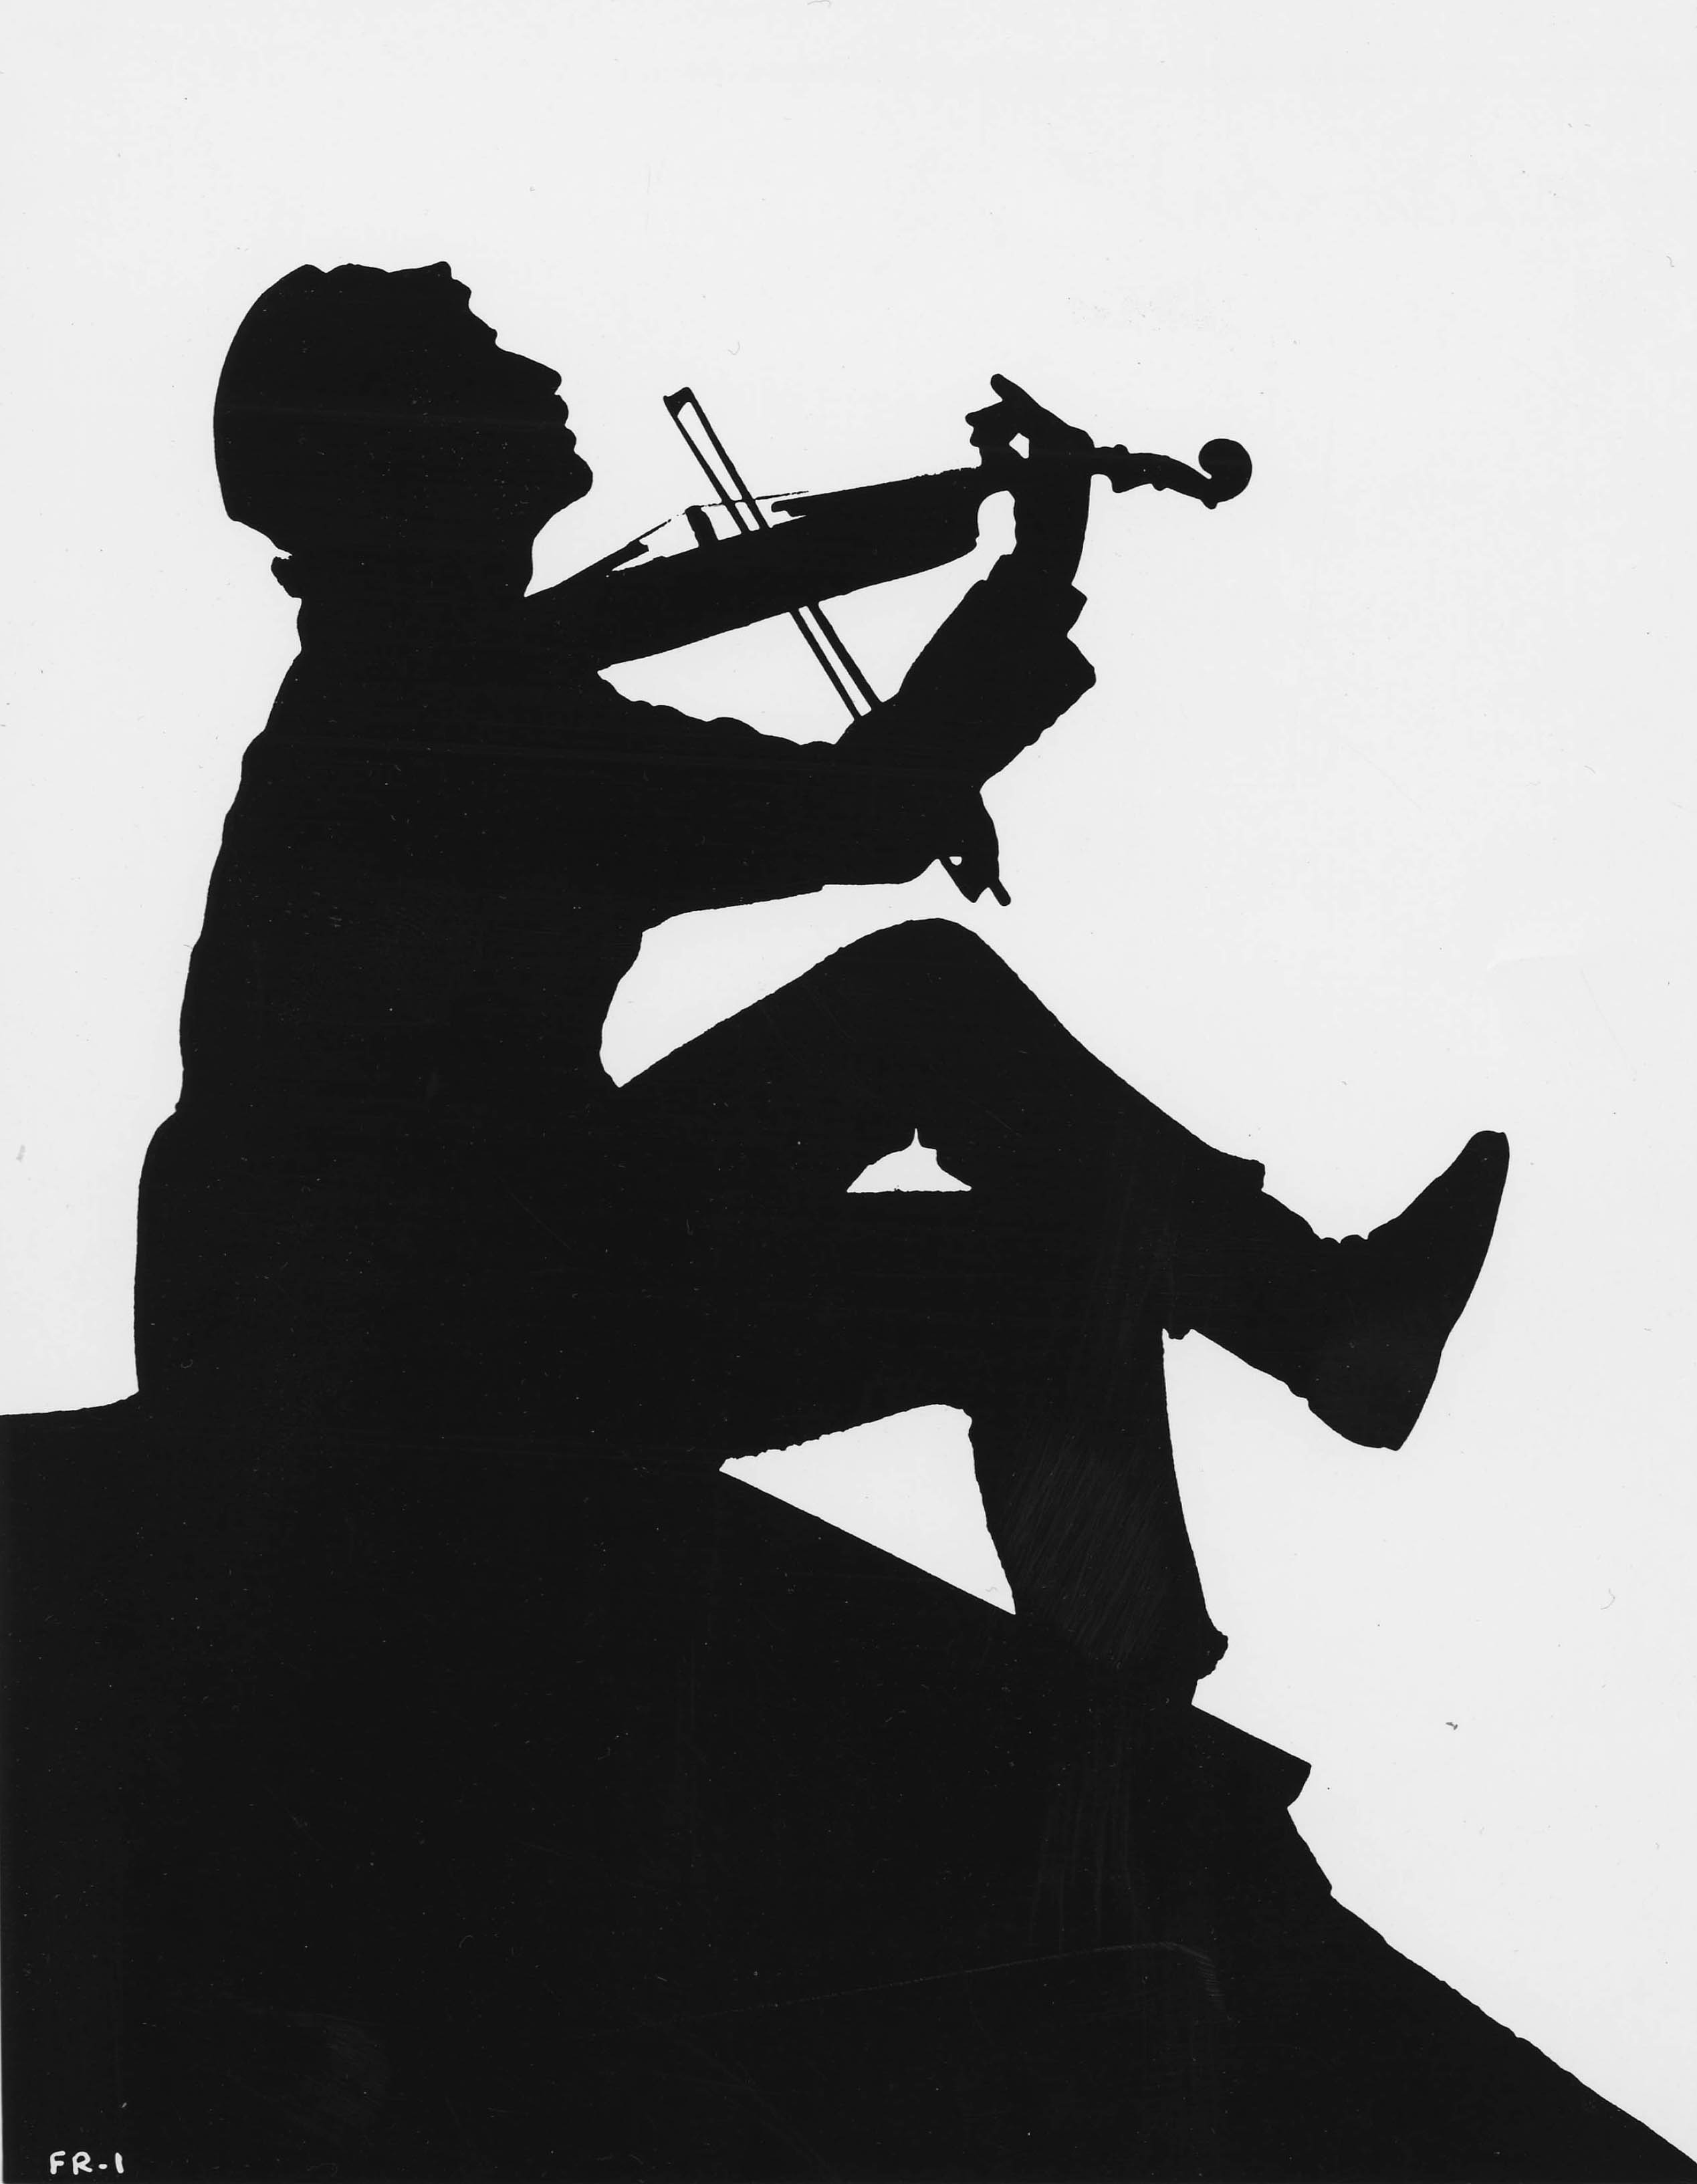 A Fiddler Is A Person Who Plays A Fiddle Or Violin.